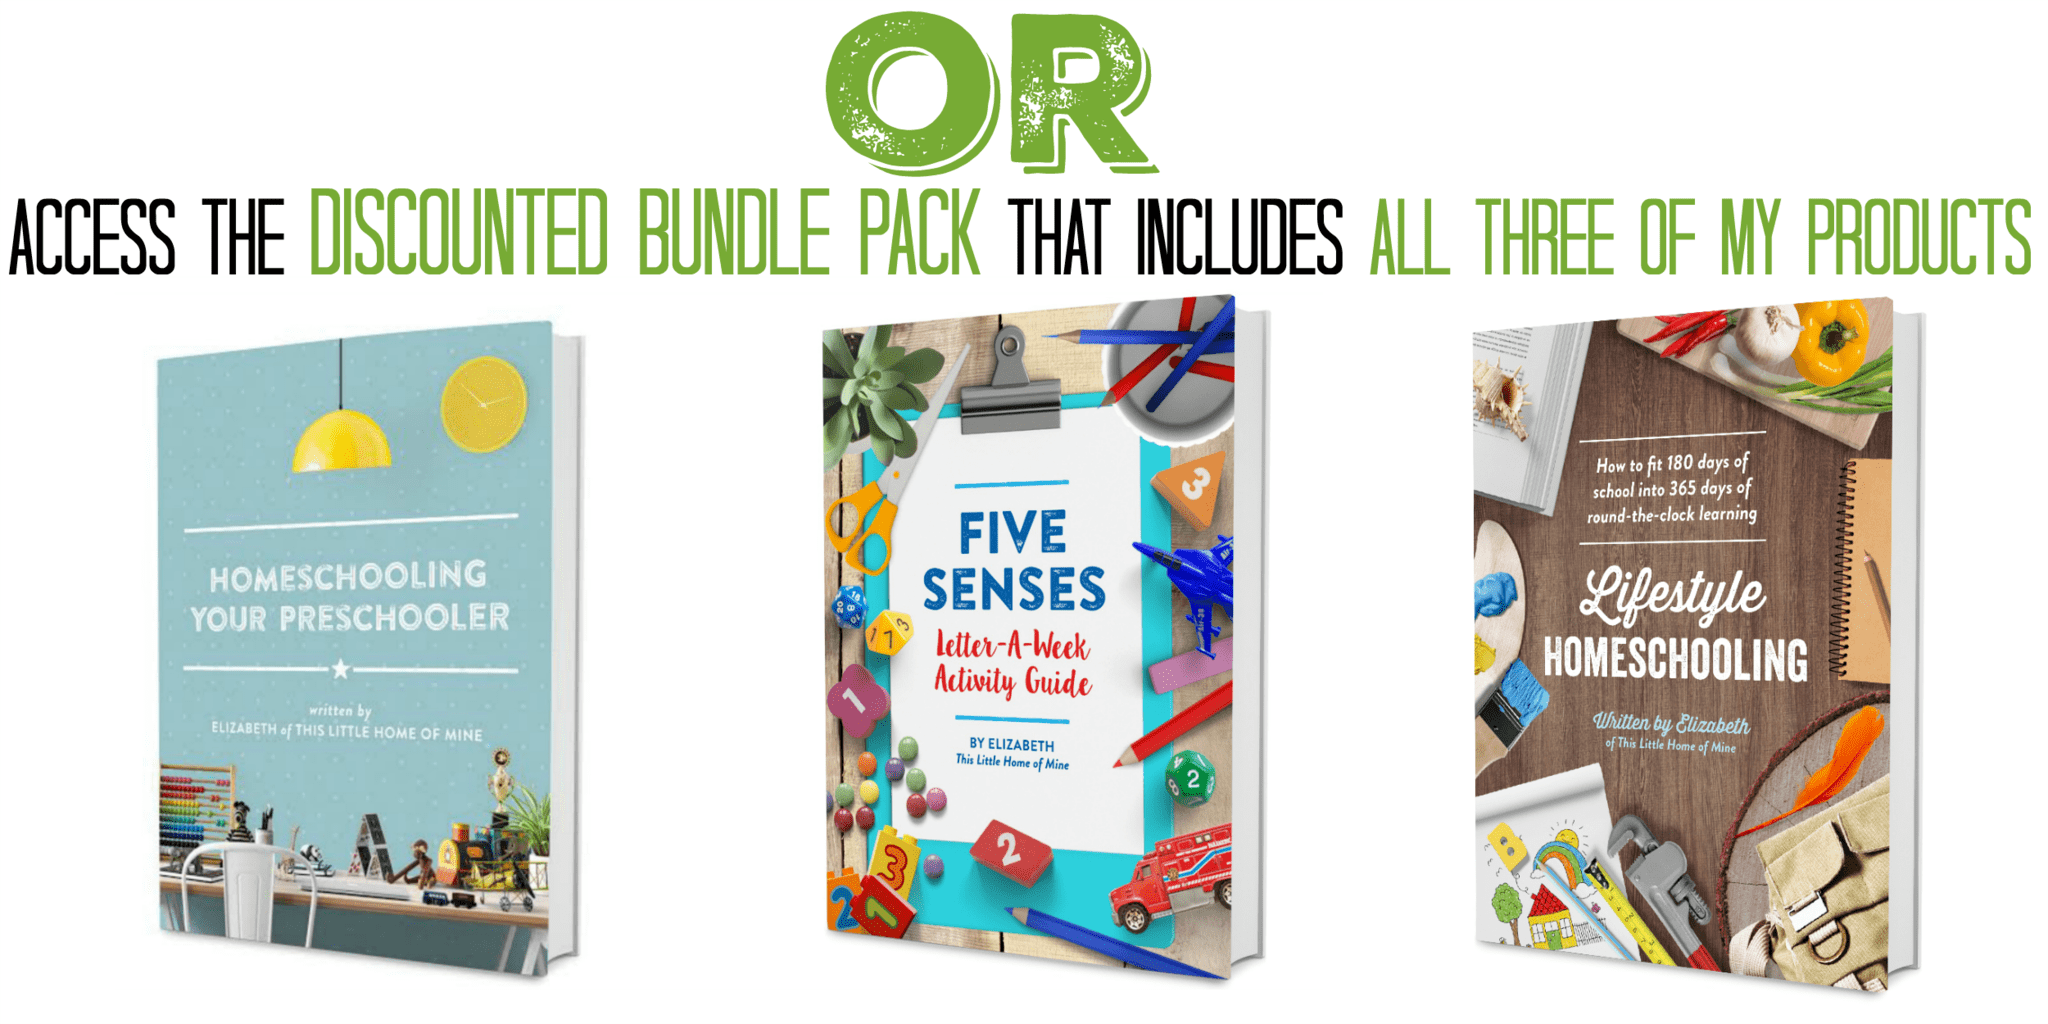 This Little Home of Mine - Ebook Bundle Pack of Homeschooling Resources